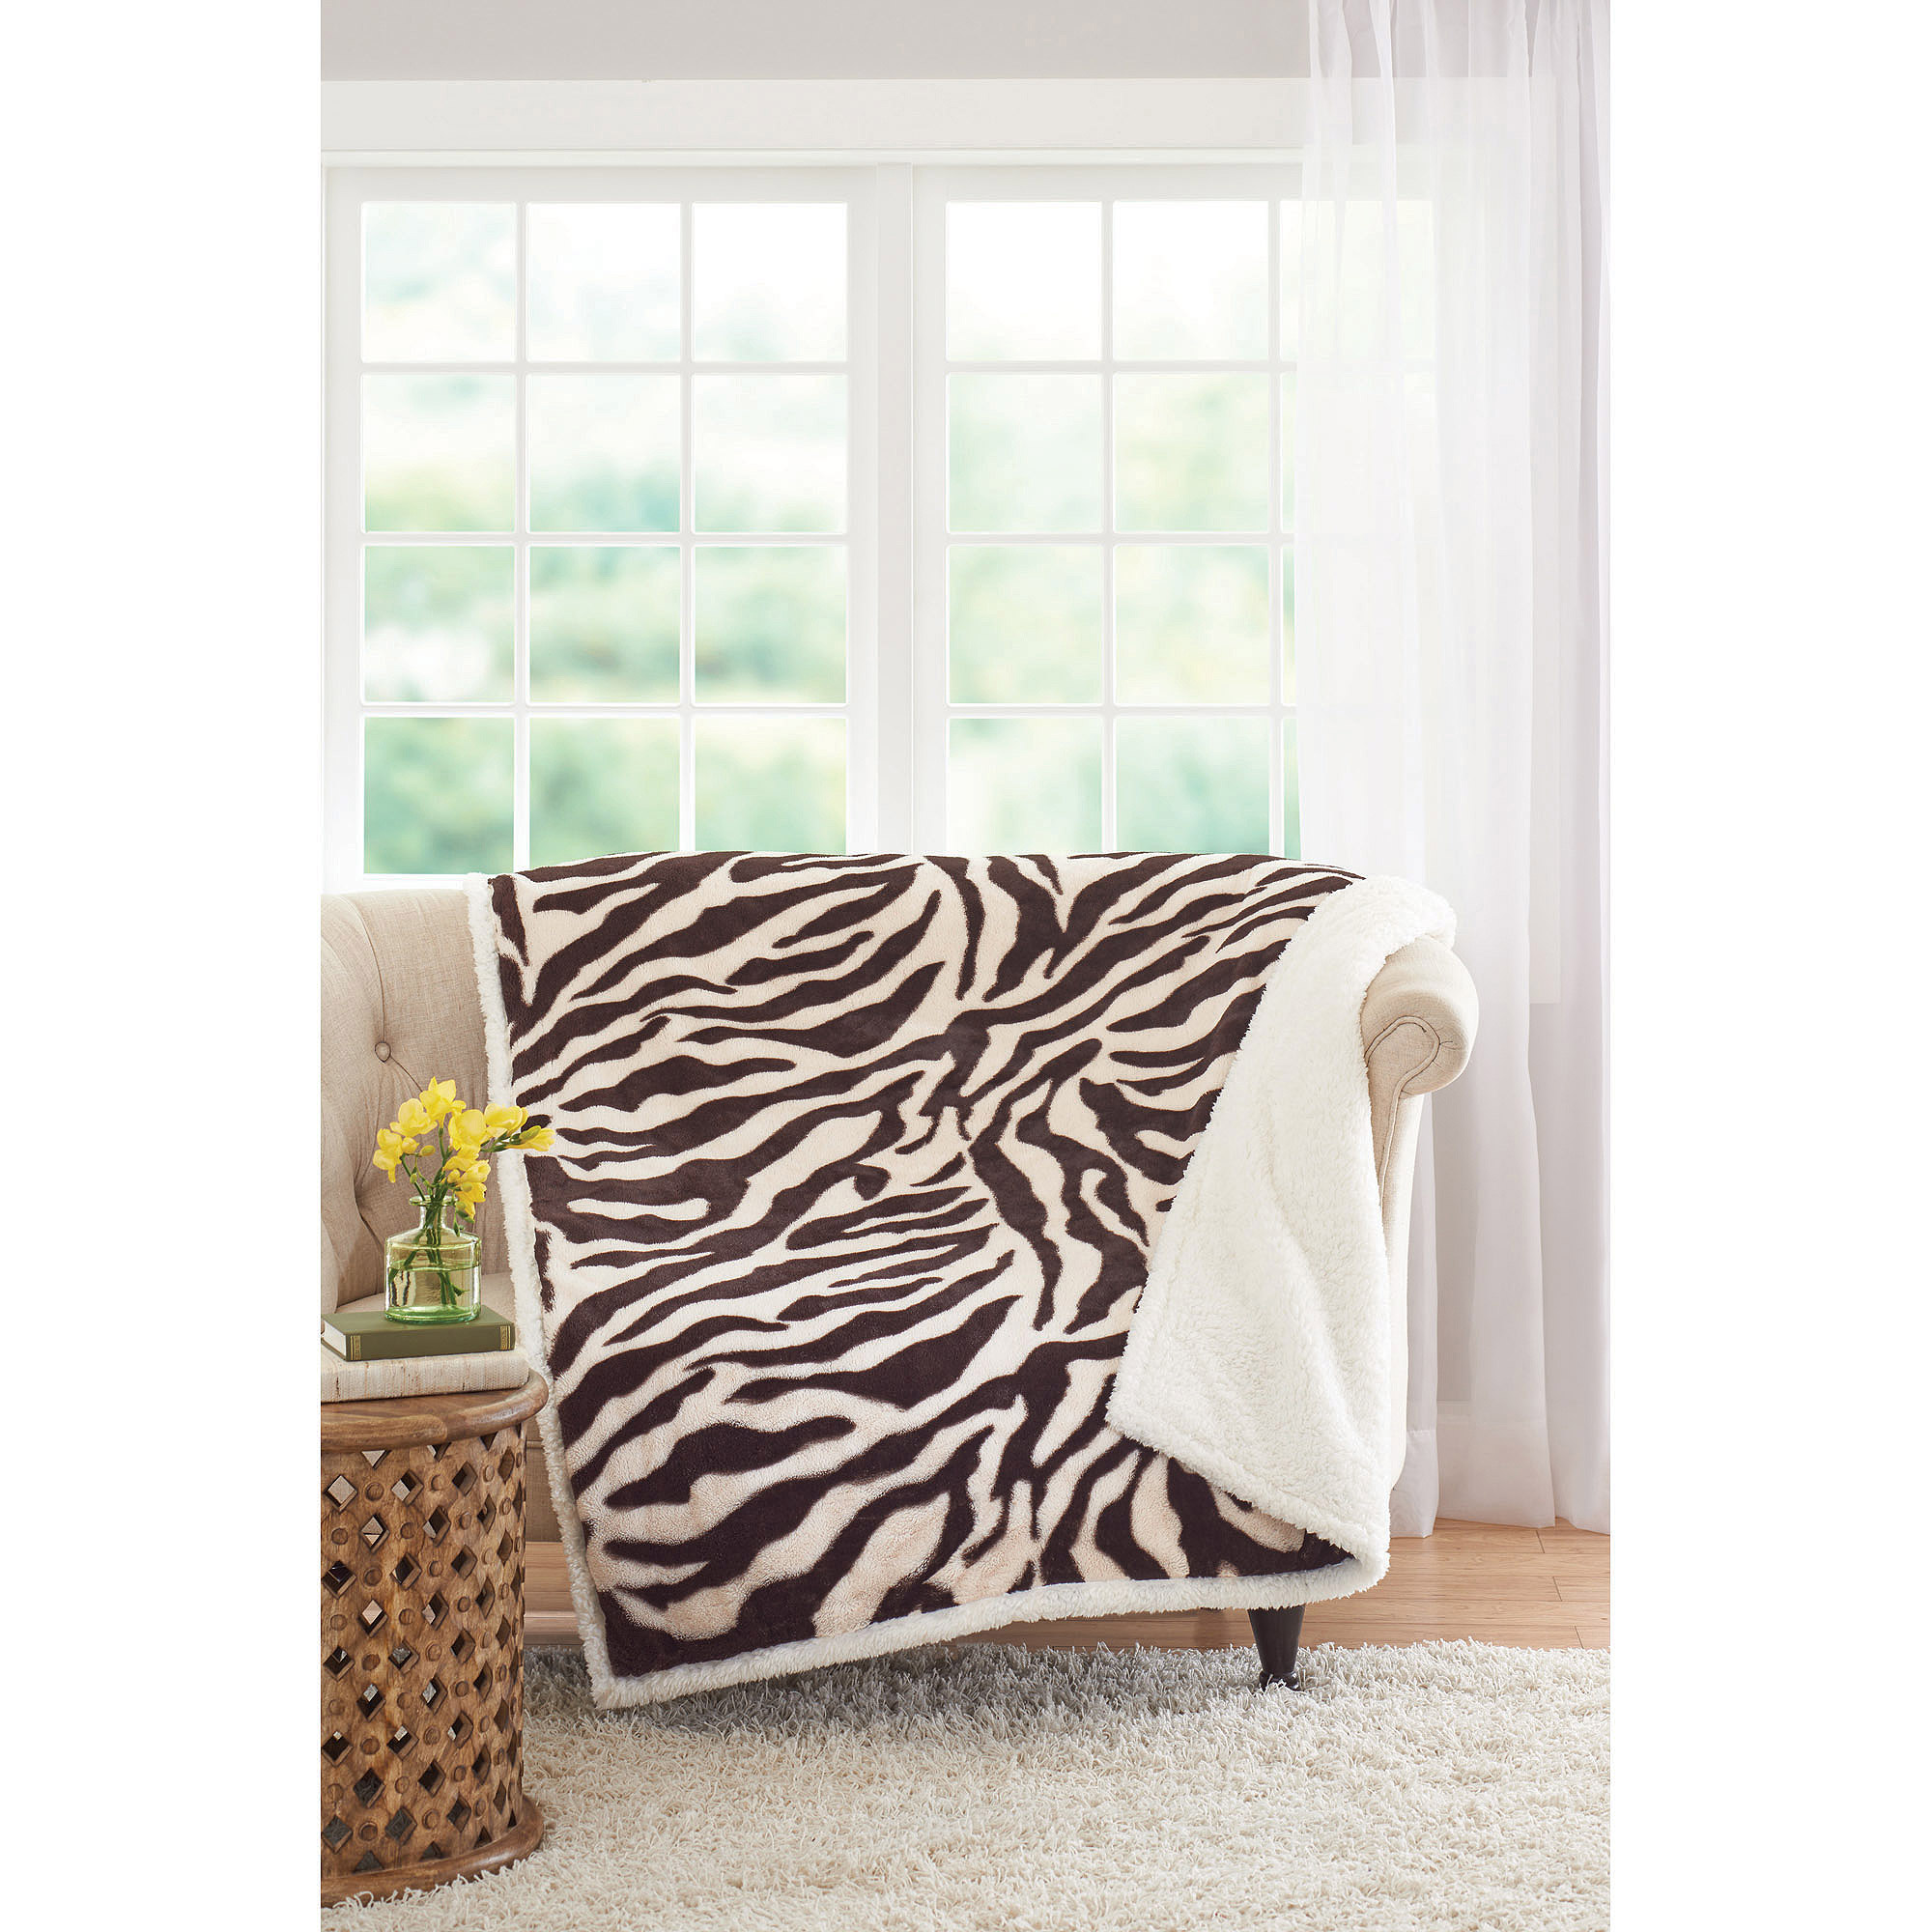 Faux fur fabric walmart - Better Homes And Gardens Faux Fur And Sherpa Throw Blanket Walmart Com